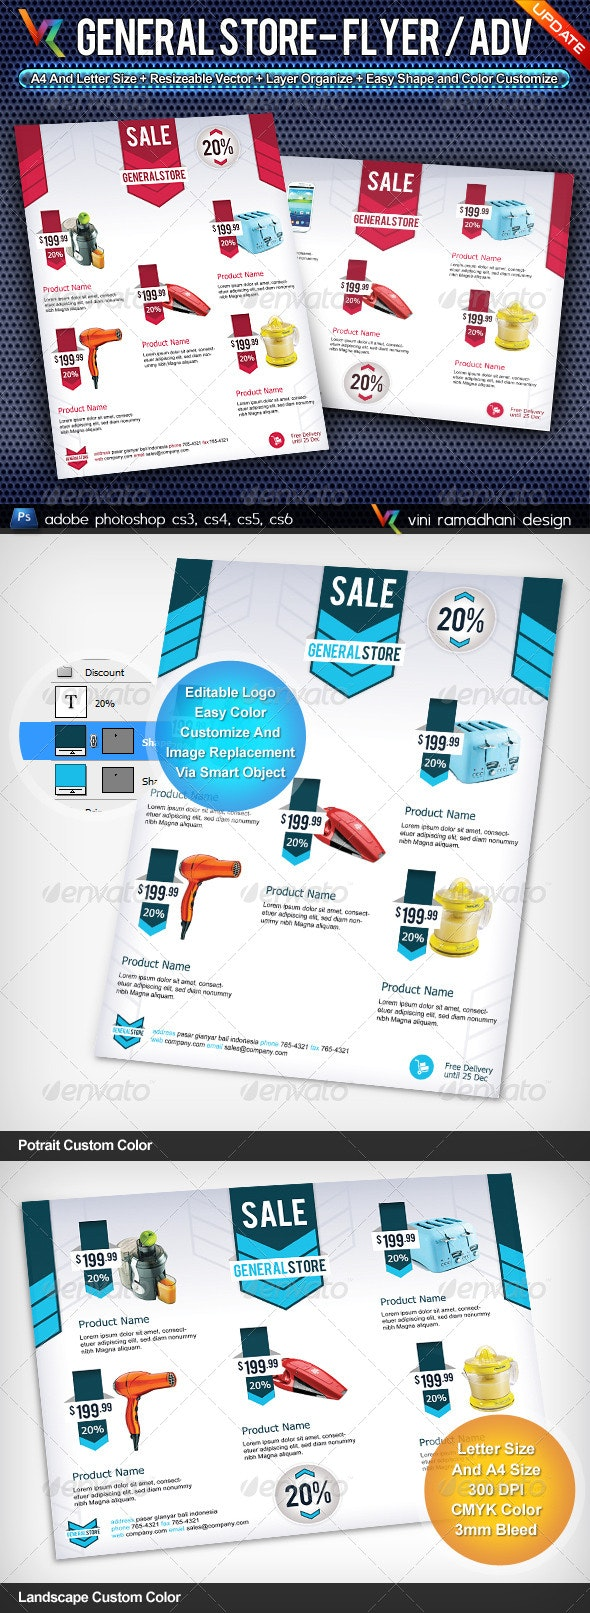 General Store Flyer Or Advertising - Corporate Flyers